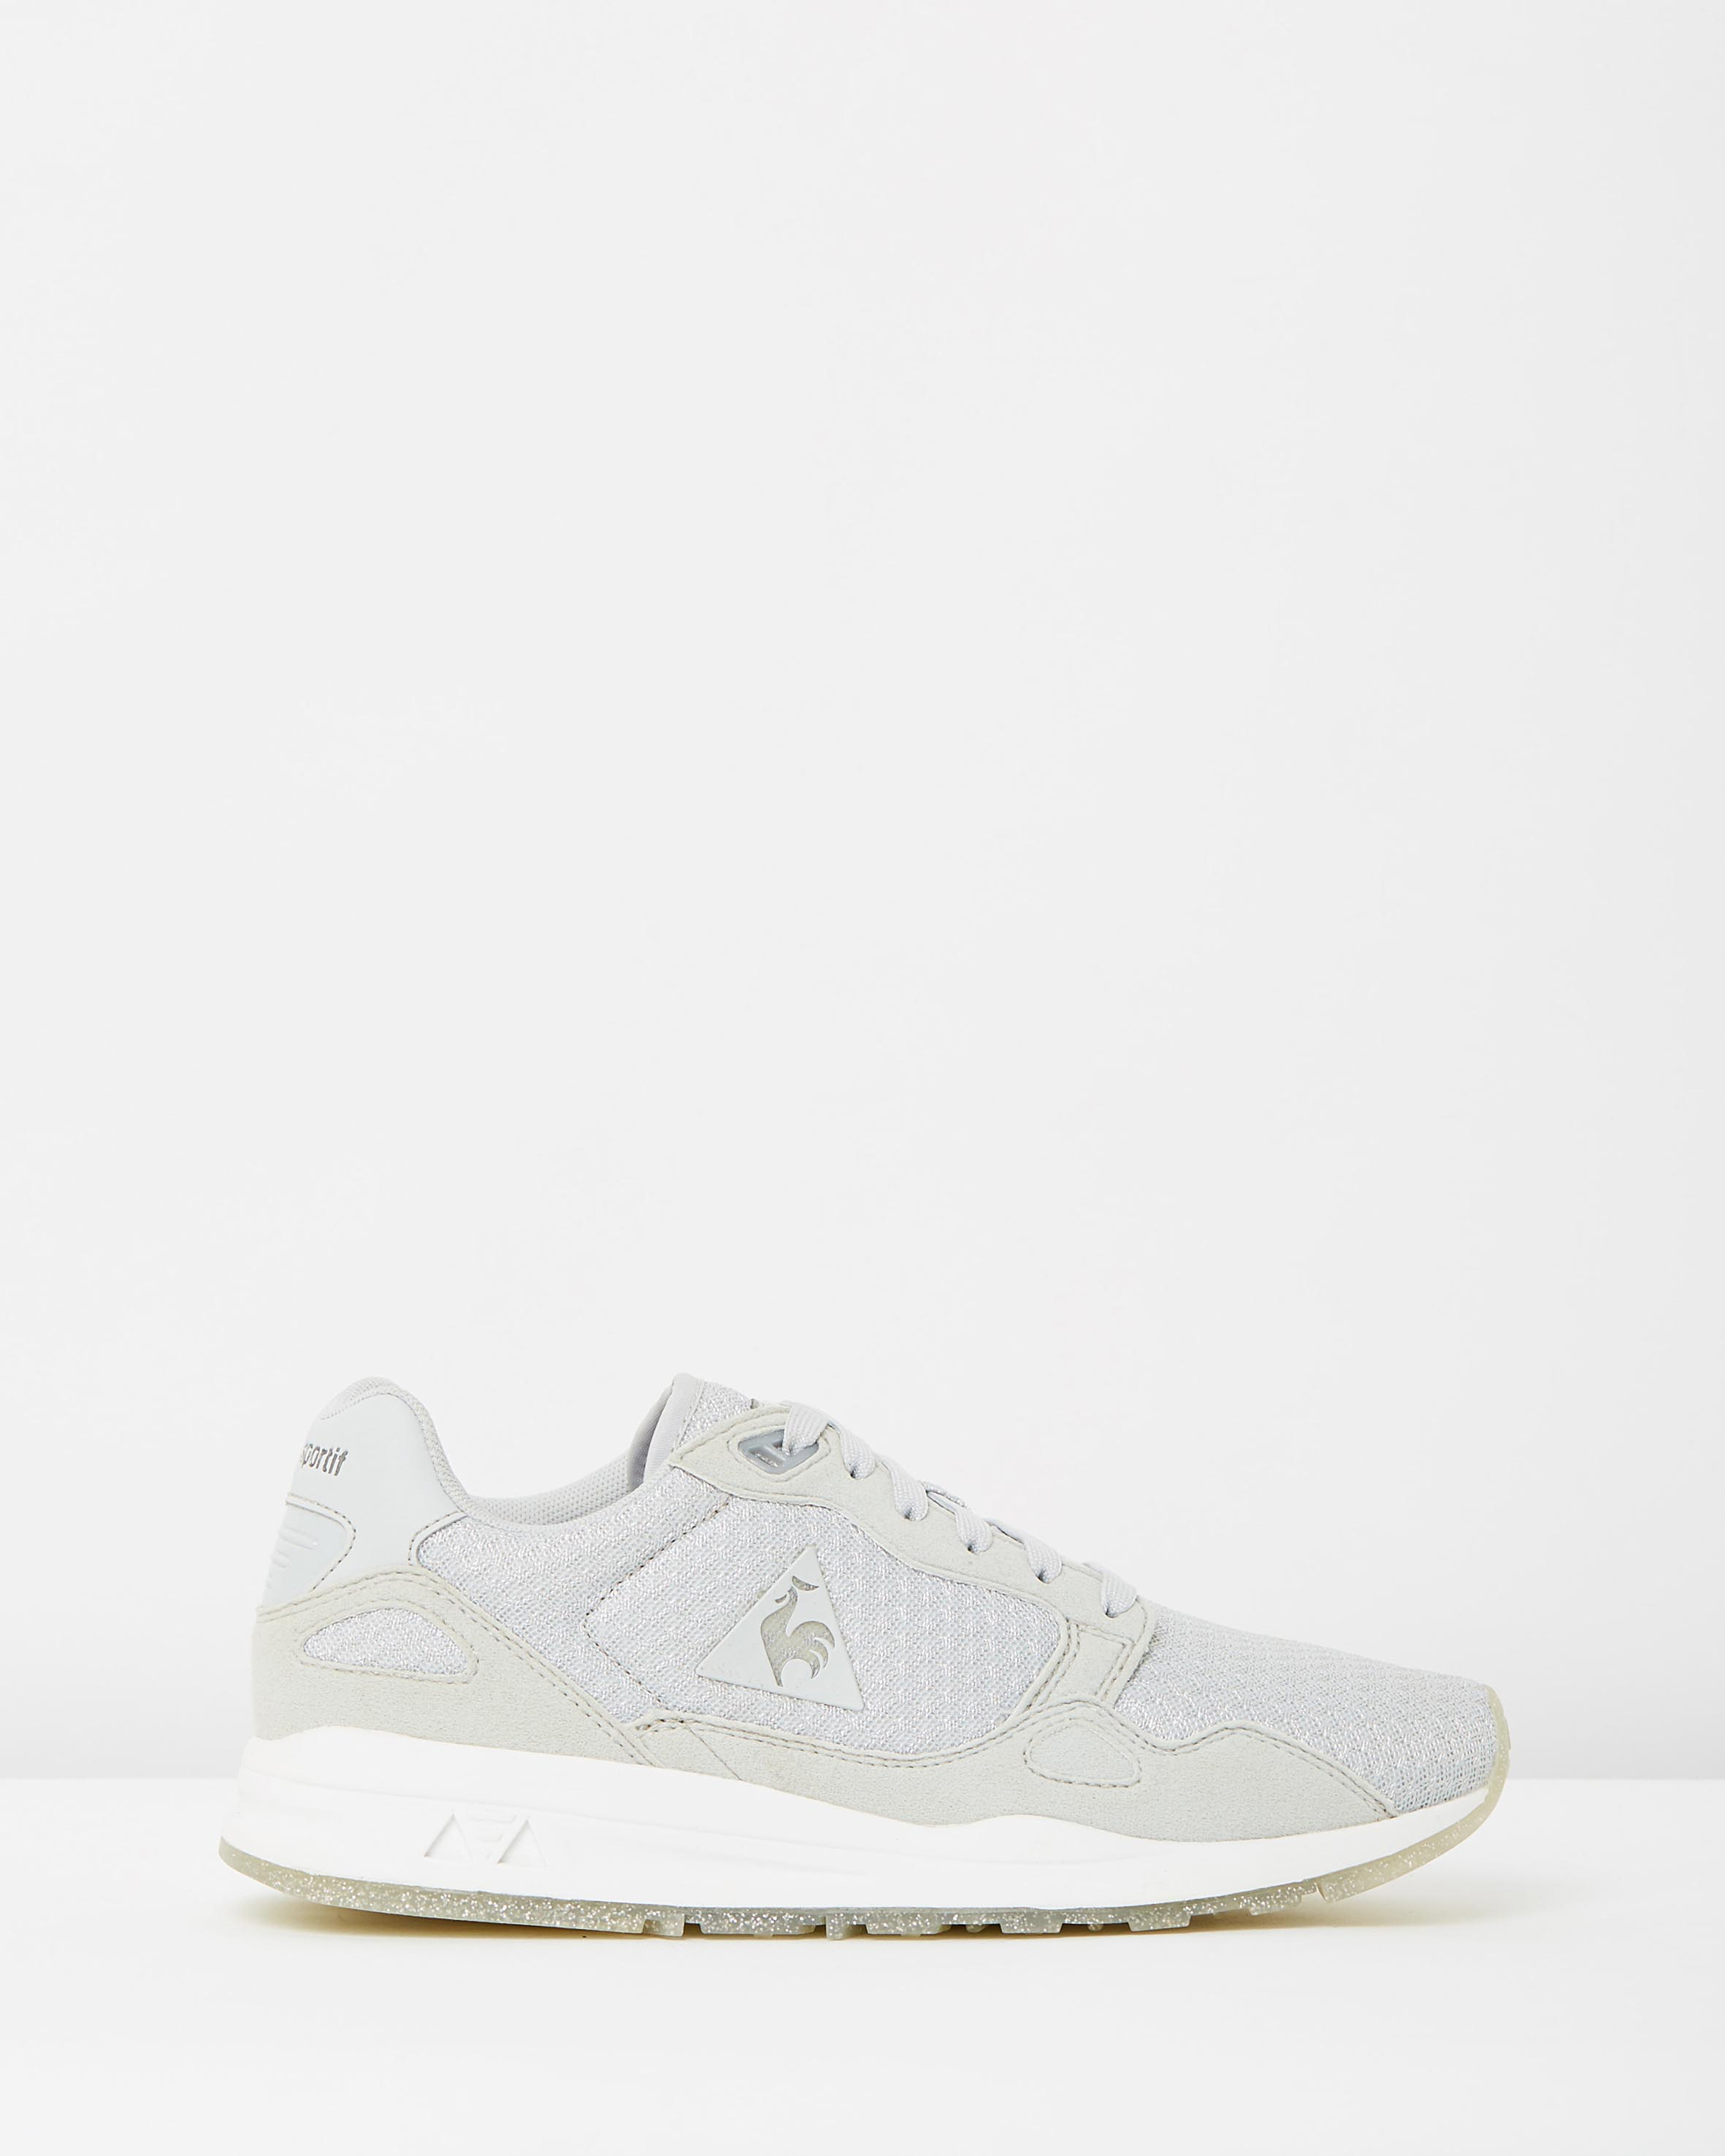 44bf12577252 ... where can i buy le coq sportif womens galet lcs r900 w sparkly trainers  1 eb9a0